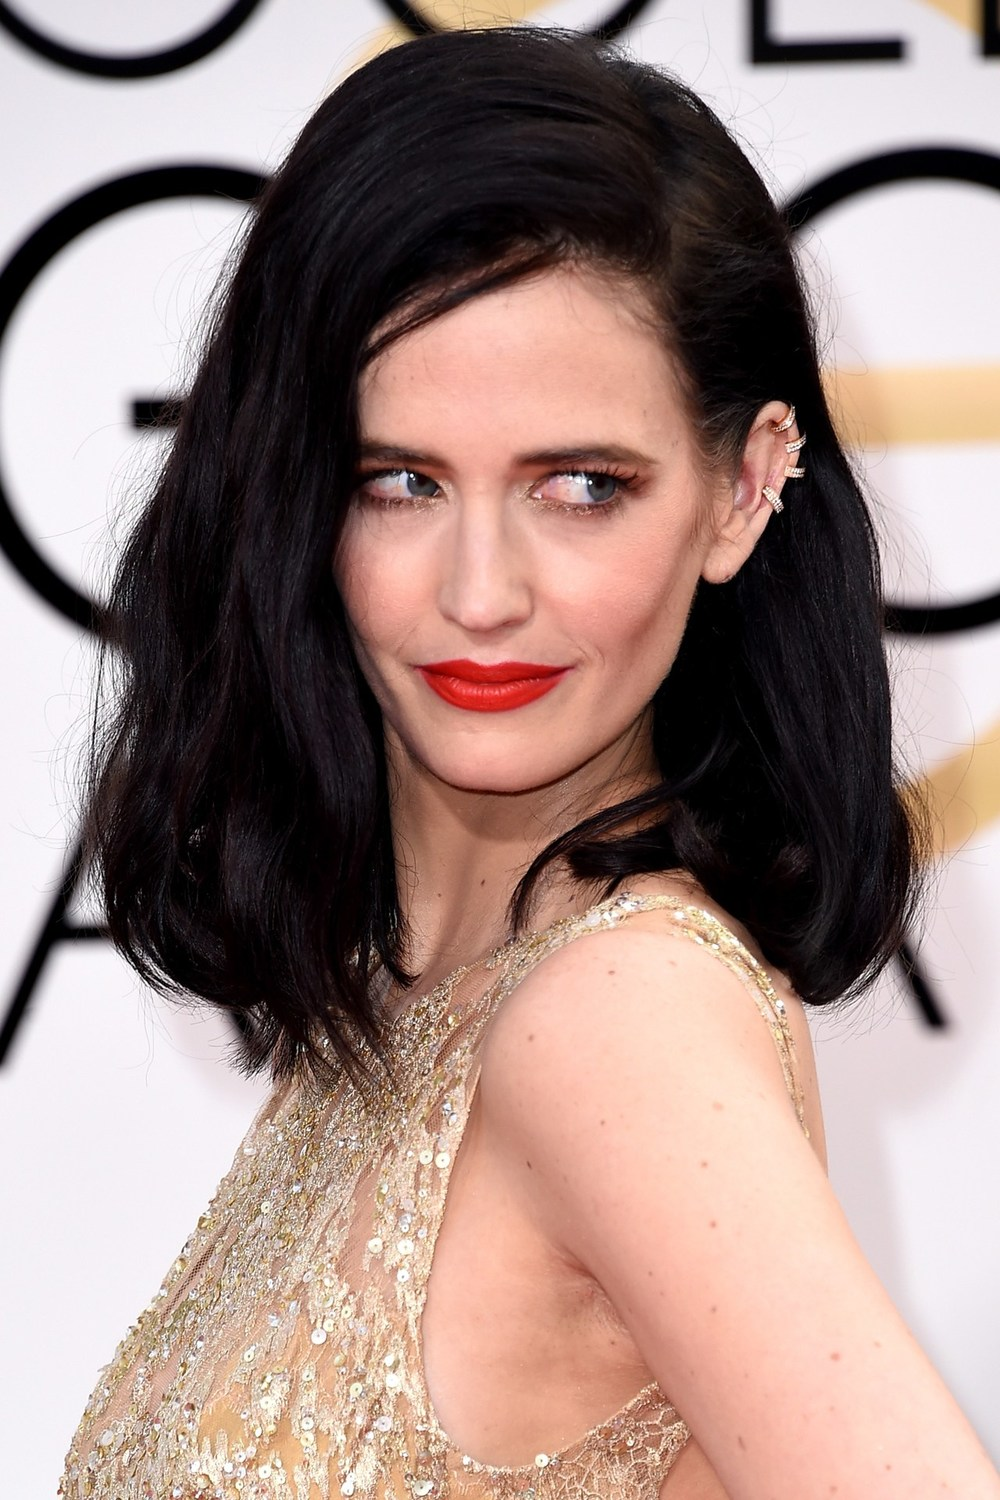 Eva Green looked seriously f*cking cool, by complementing her jet-black hair with bold red lips and shimmering gold eye make-up, accessorising with a jewelled ear cuff.